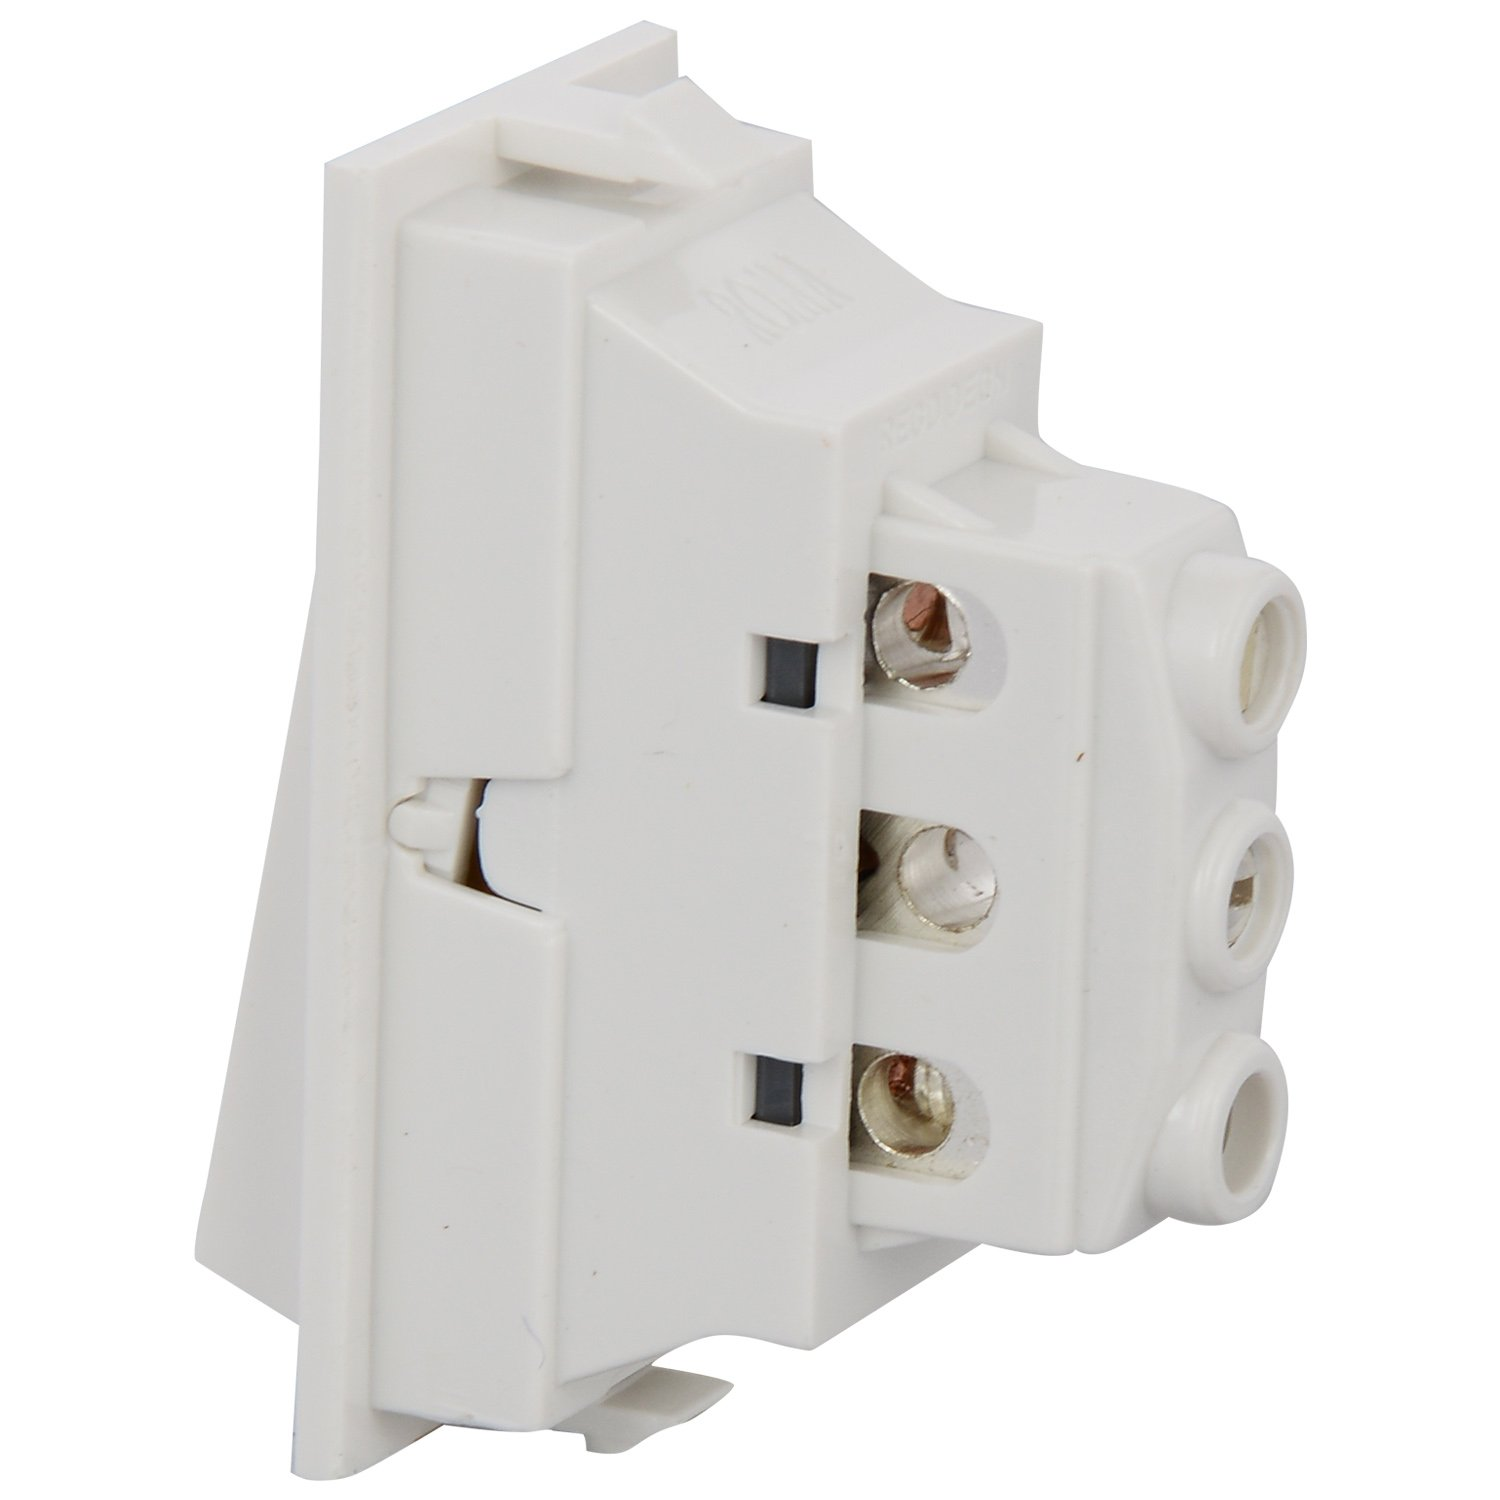 Anchor Roma 2-Way Switch 21088, White, 20 Amp 240V: Amazon.in: Home ...